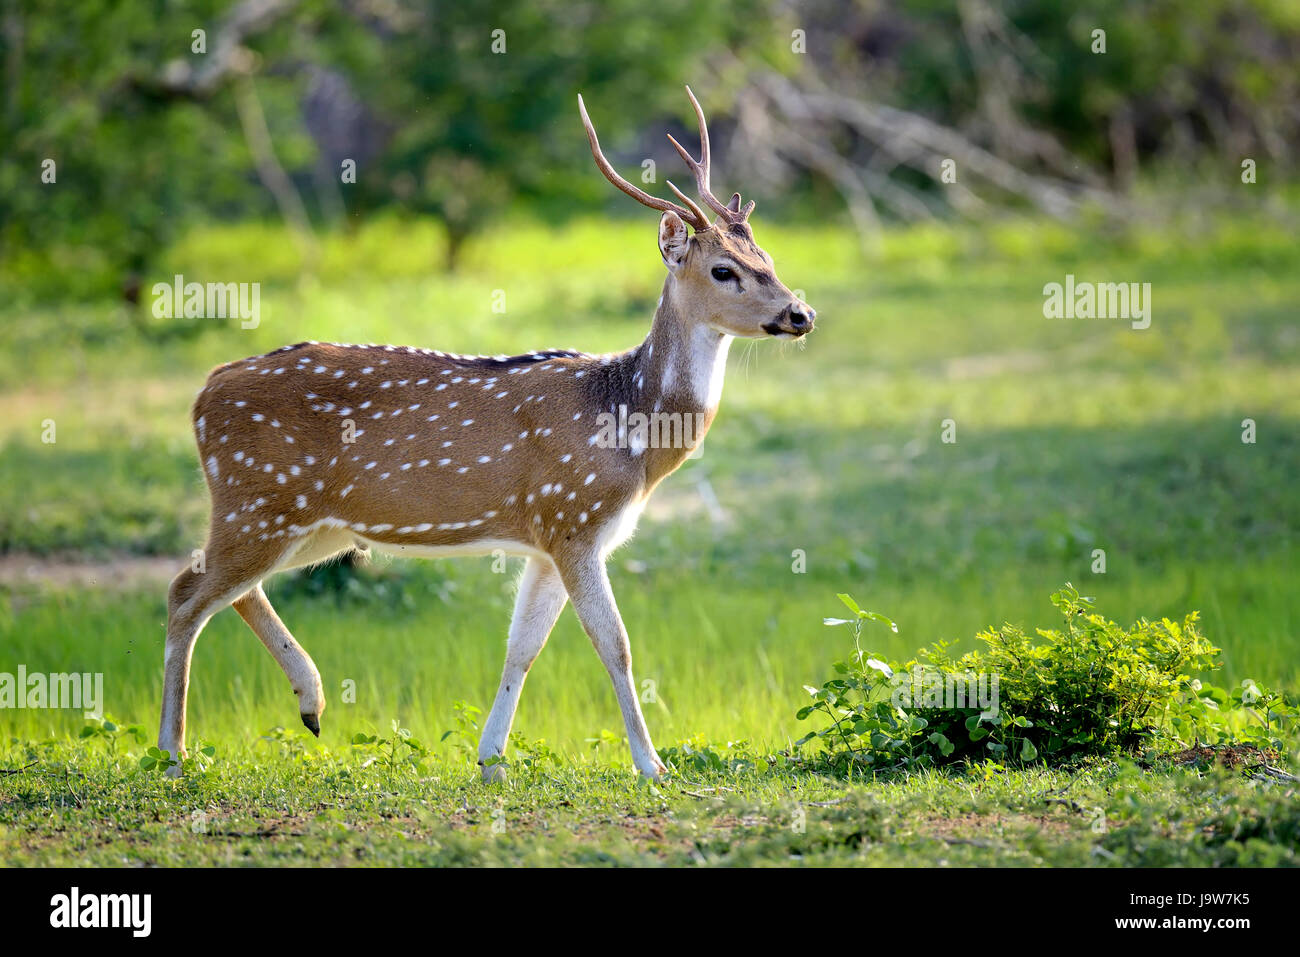 Wild Spotted deer in Yala National park, Sri Lanka - Stock Image